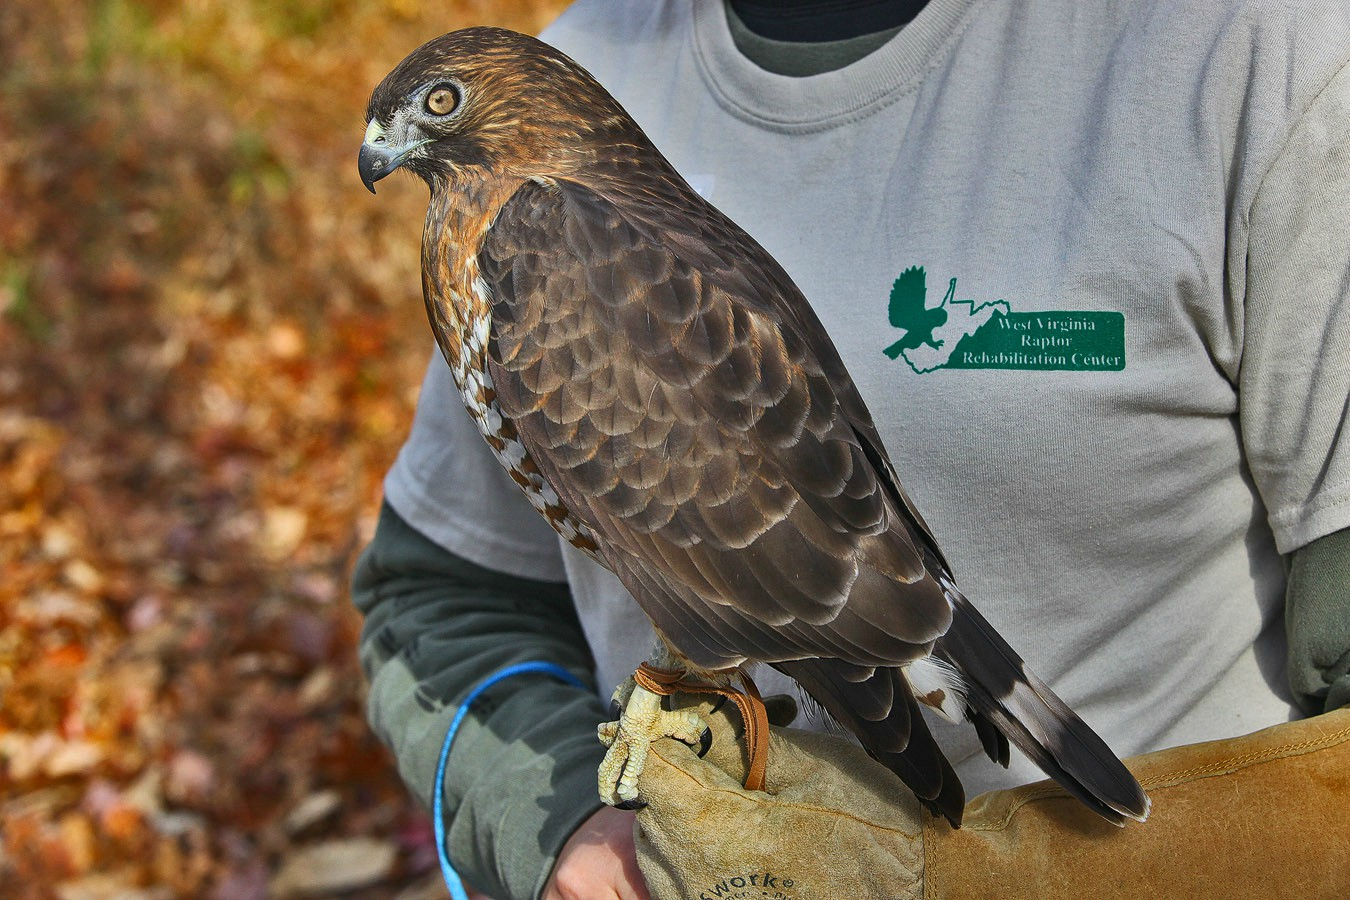 wide tailed hawk img aw author sava gregory and v verena